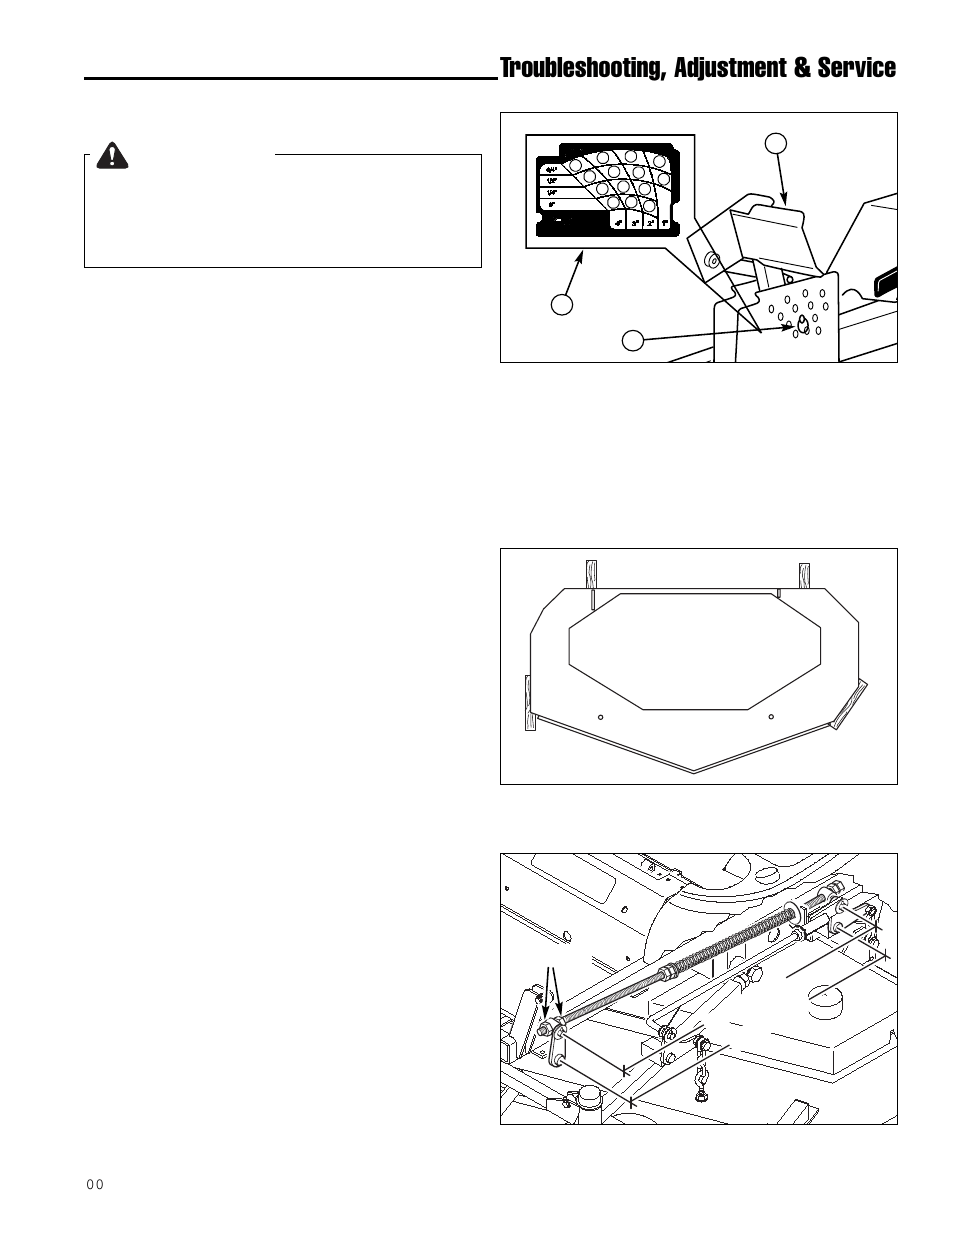 medium resolution of troubleshooting adjustment service warning cutting height adjustment simplicity zt2561f user manual page 31 44